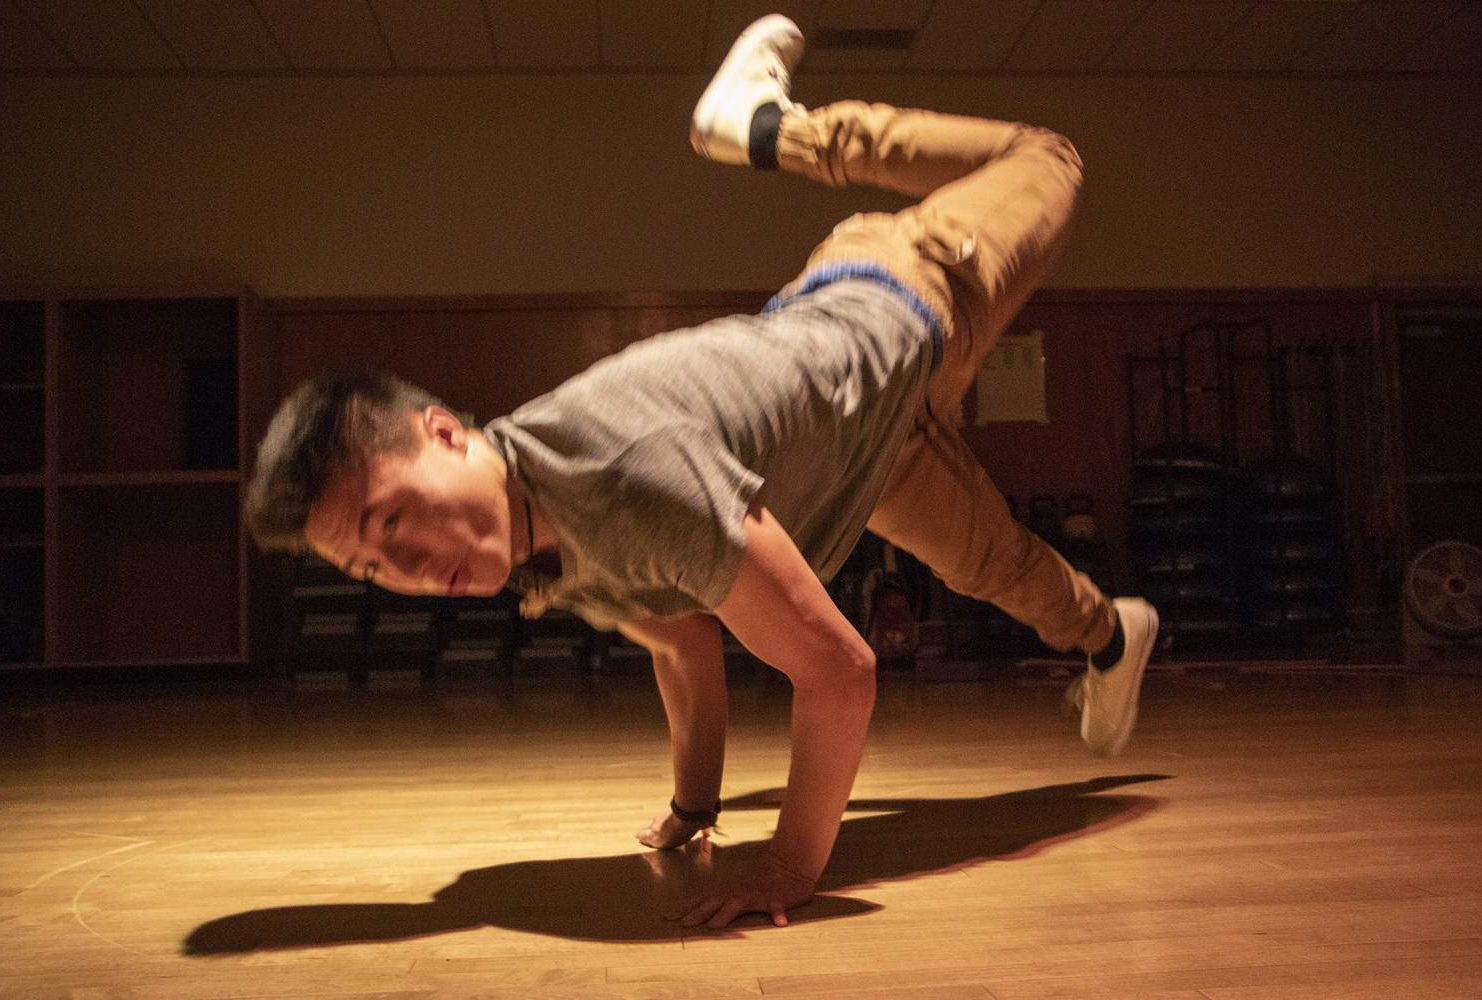 Dance major, Jeremy Xiong break-dances in a dance studio at American River College during the Dance Production: Studio and Stage class, on Feb. 6, 2019. He describes himself as a b-boy. (Photo by Ashley Hayes-Stone)